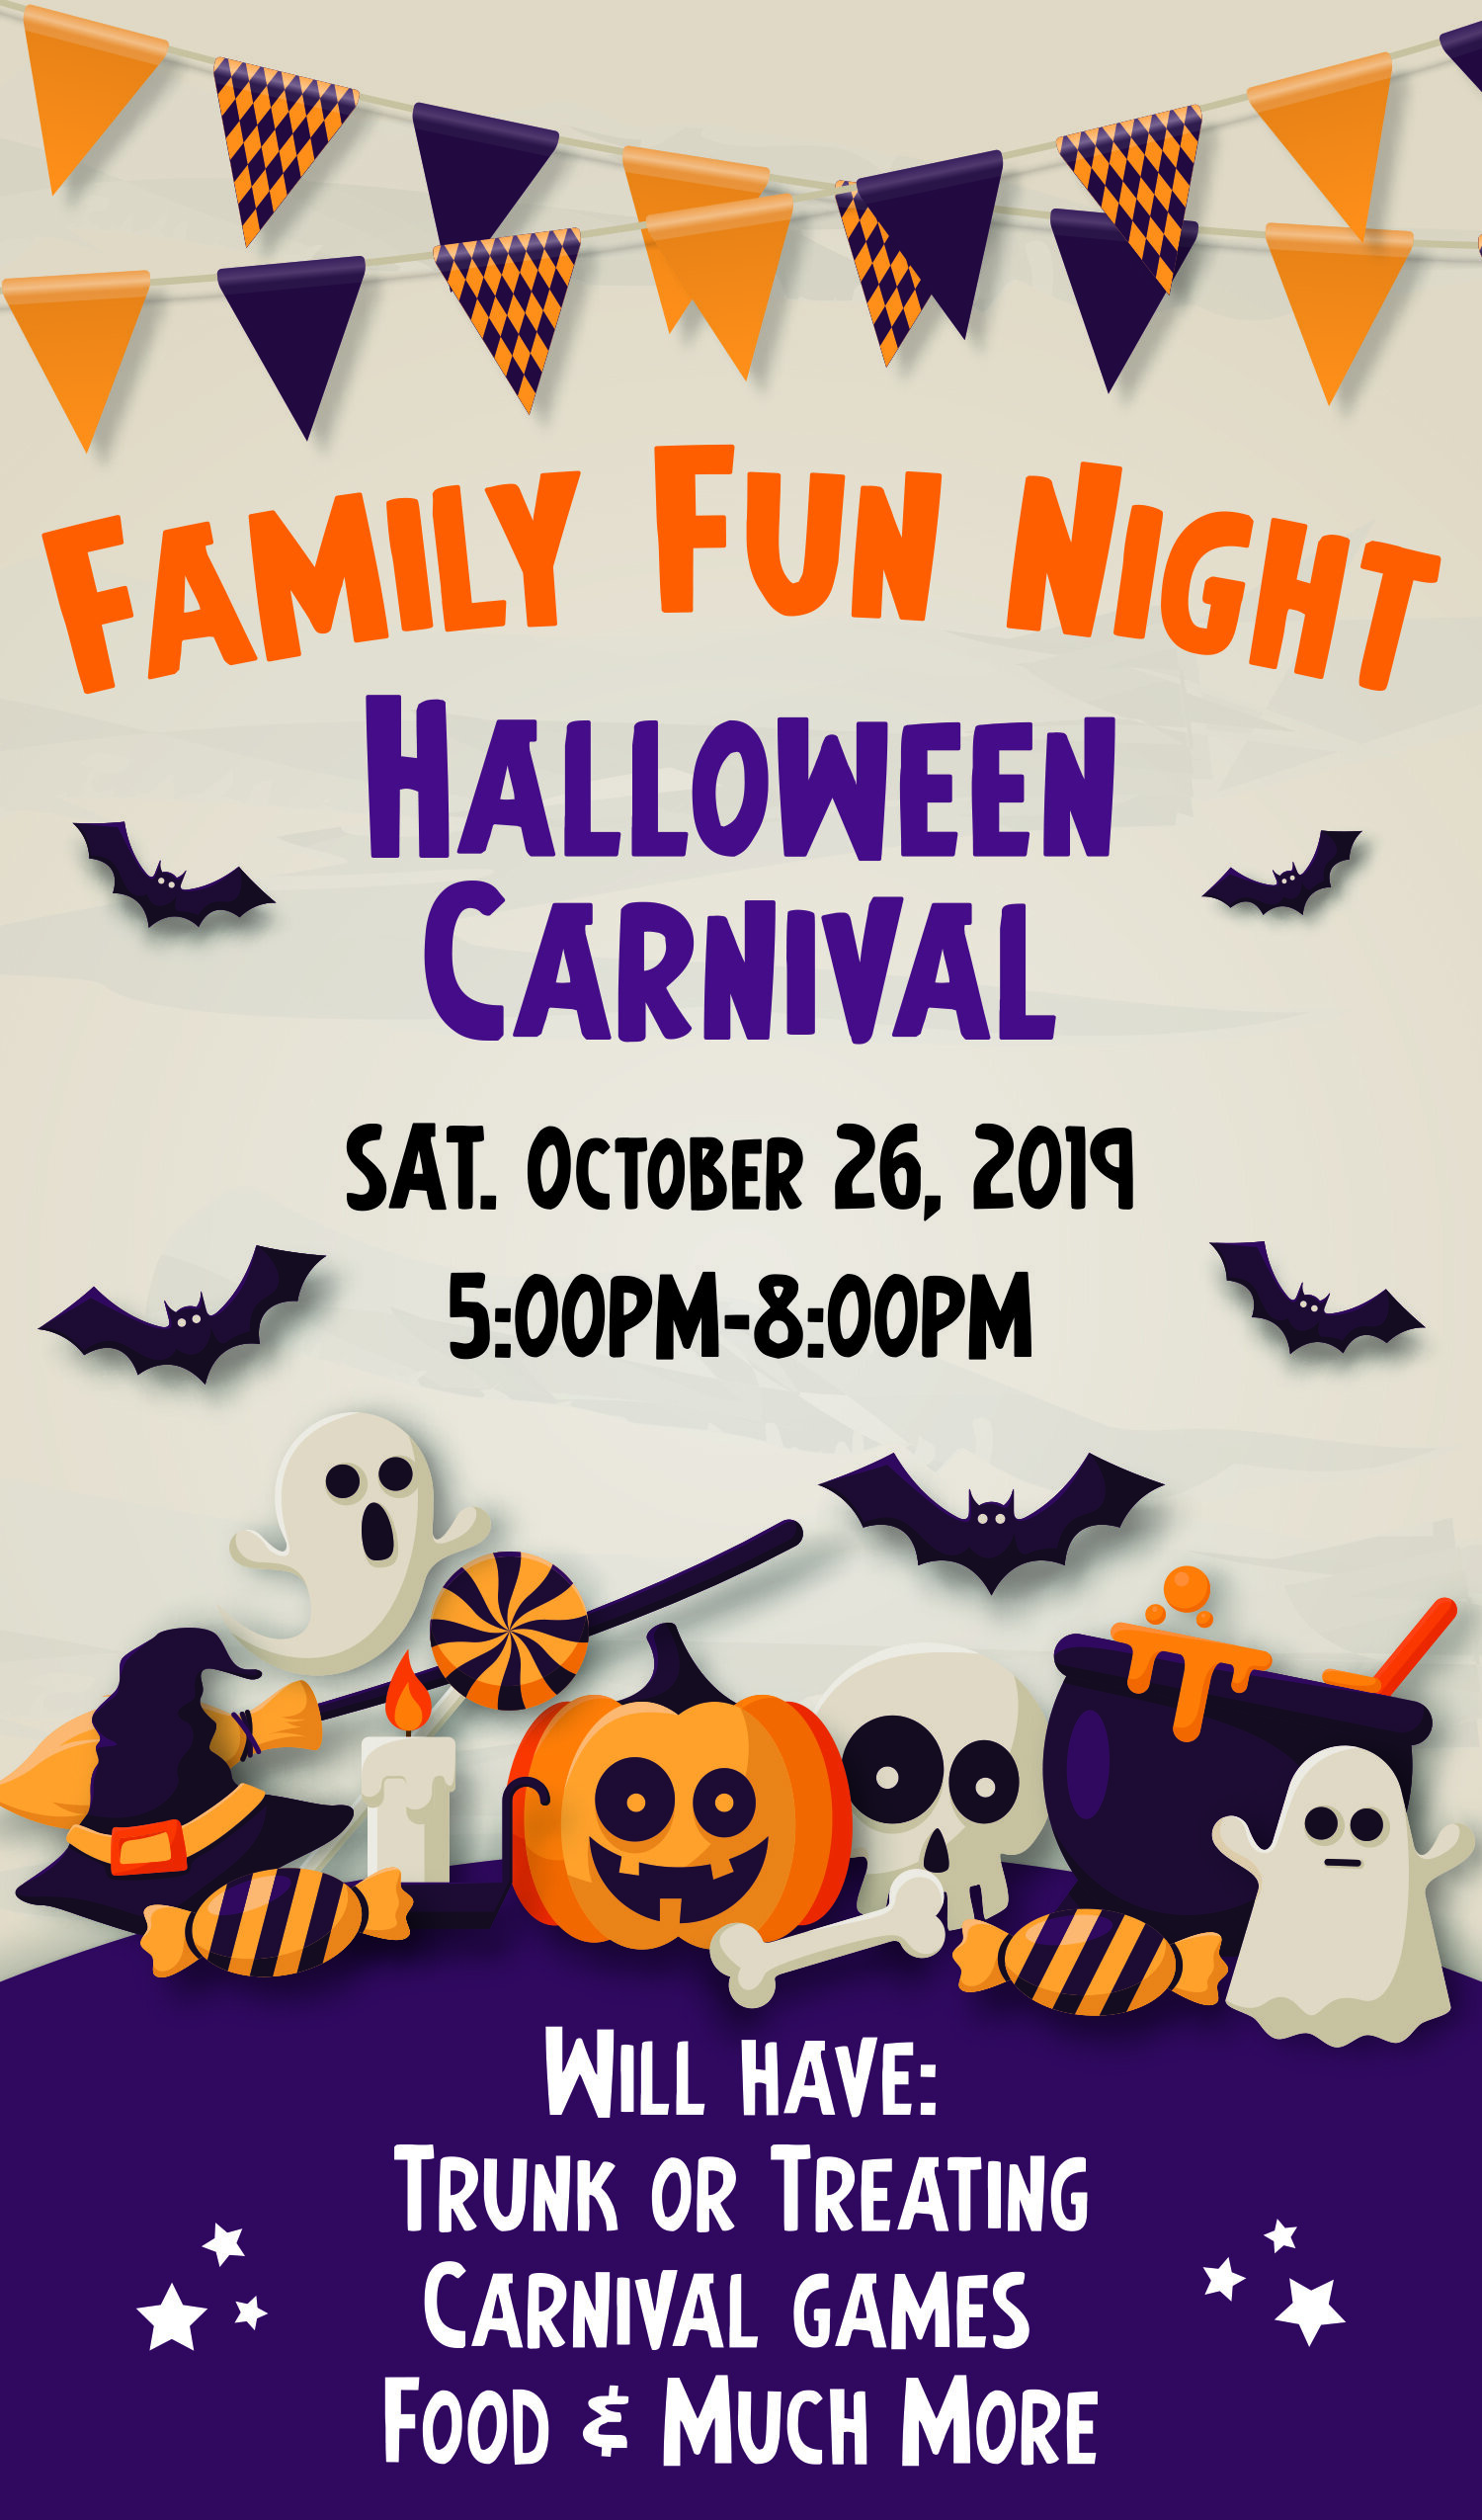 Join us on Saturday, October 26th from 5:00PM-8:00PM at Eastbluff Elementary for the Eastbluff Elementary Family Fun Night brought to you by the Eastbluff EDADS. We will have Trick or Treat for the kids, a Costume Contest, Carnival Games and a whole lot more. Tickets are $25.00 ($30.00 at gate) and all proceeds go to support your children education through The EDADS Foundation.